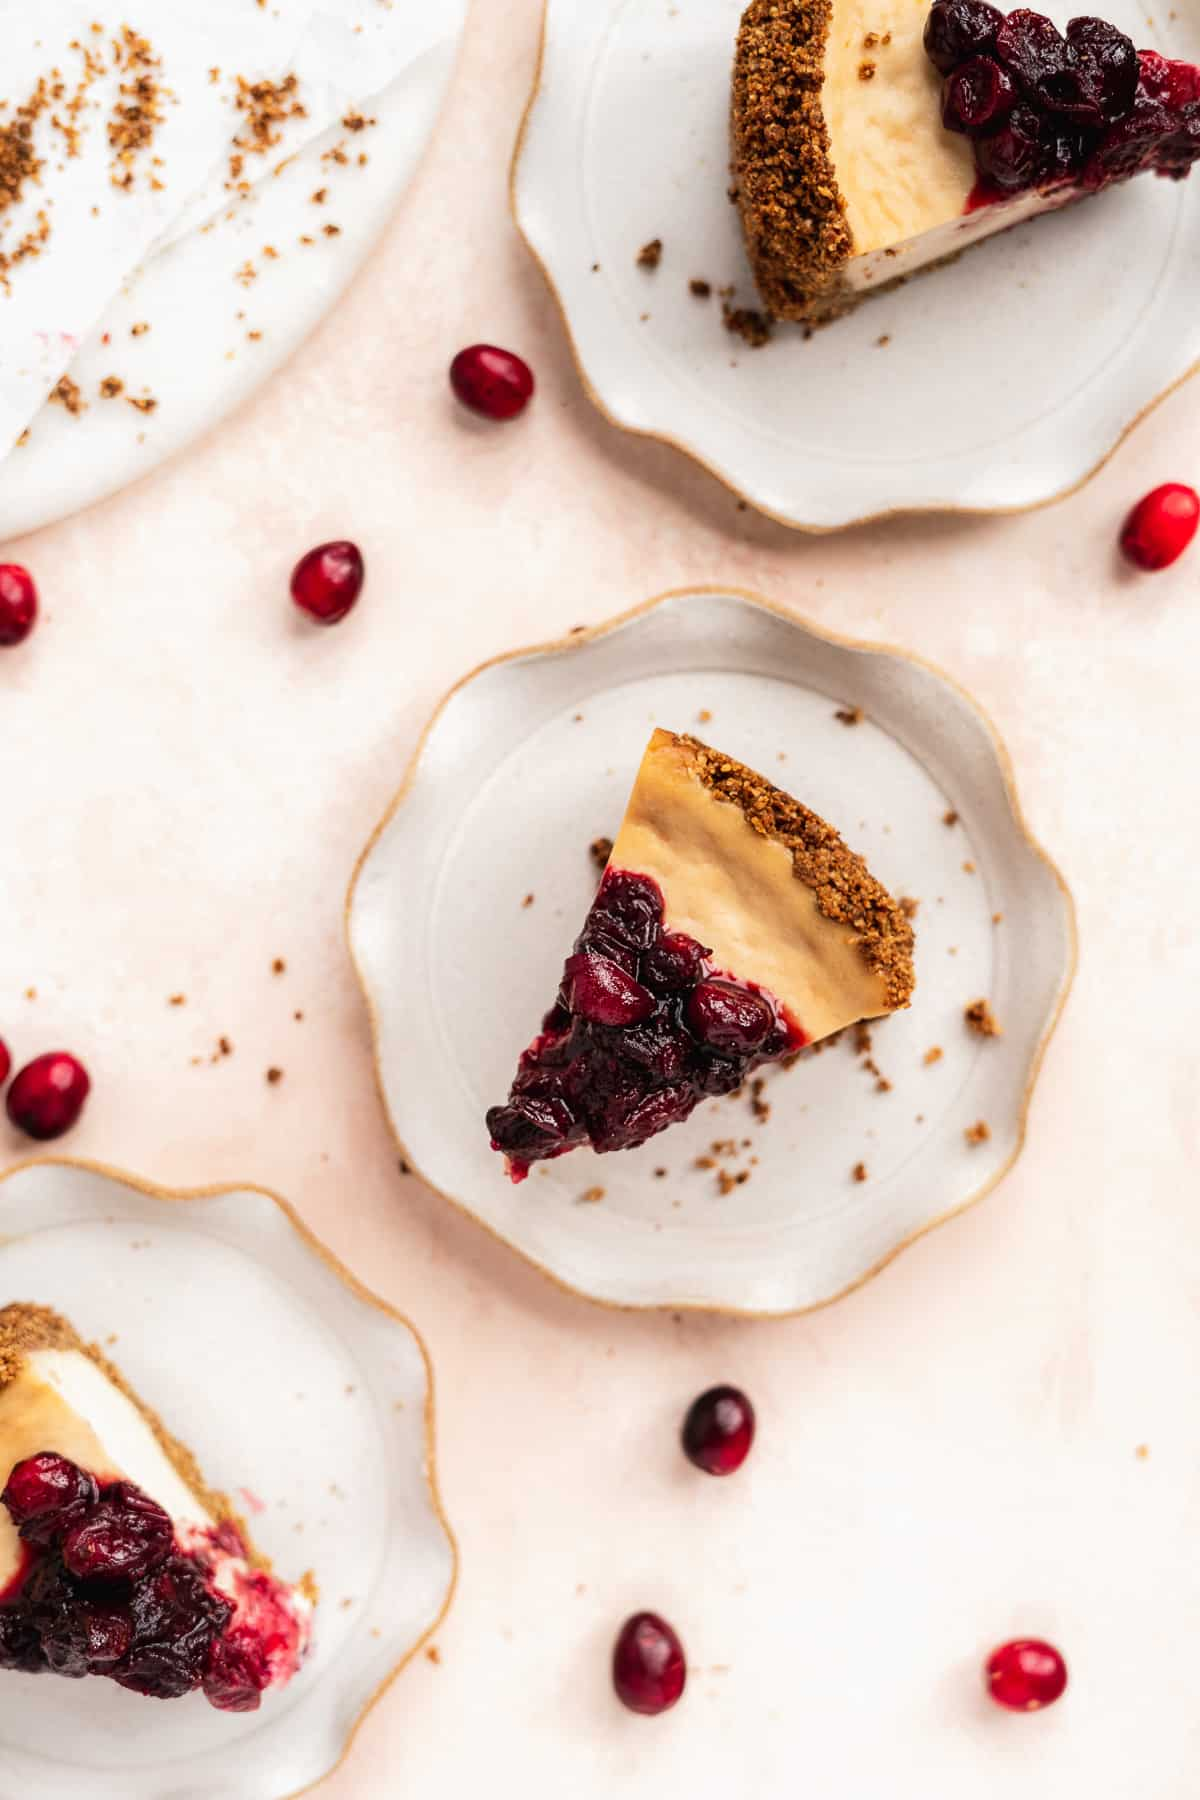 Slices of Vegan Baked Cranberry Cheesecake with Graham Cracker Crust on scalloped plates.  Red cranberries are sprinkled around.